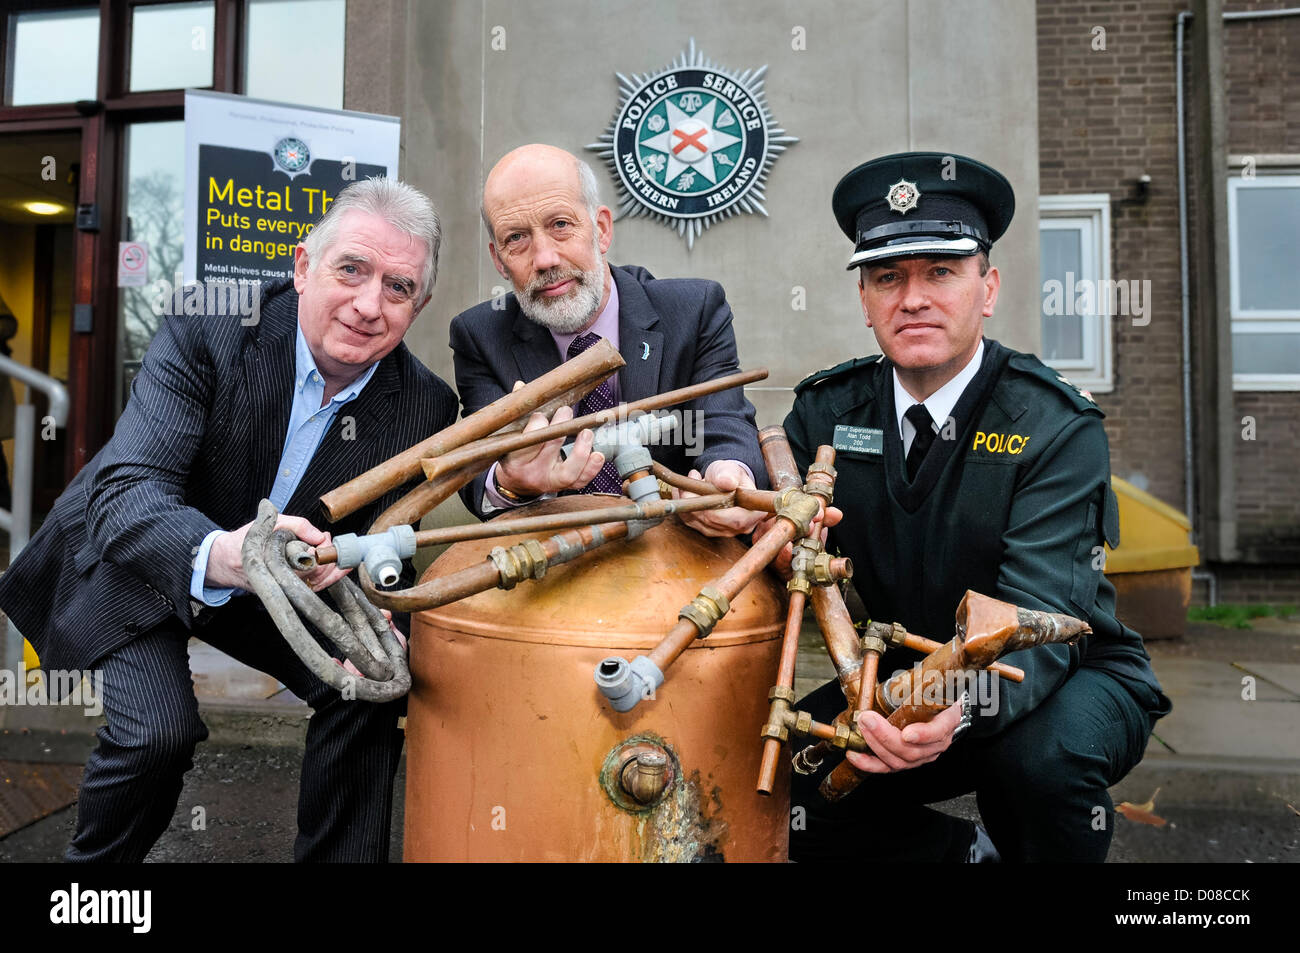 Belfast, Northern Ireland. 20th November 2012. Dennis Monaghan (Metal Recycling Industry), Justice Minister David - Stock Image